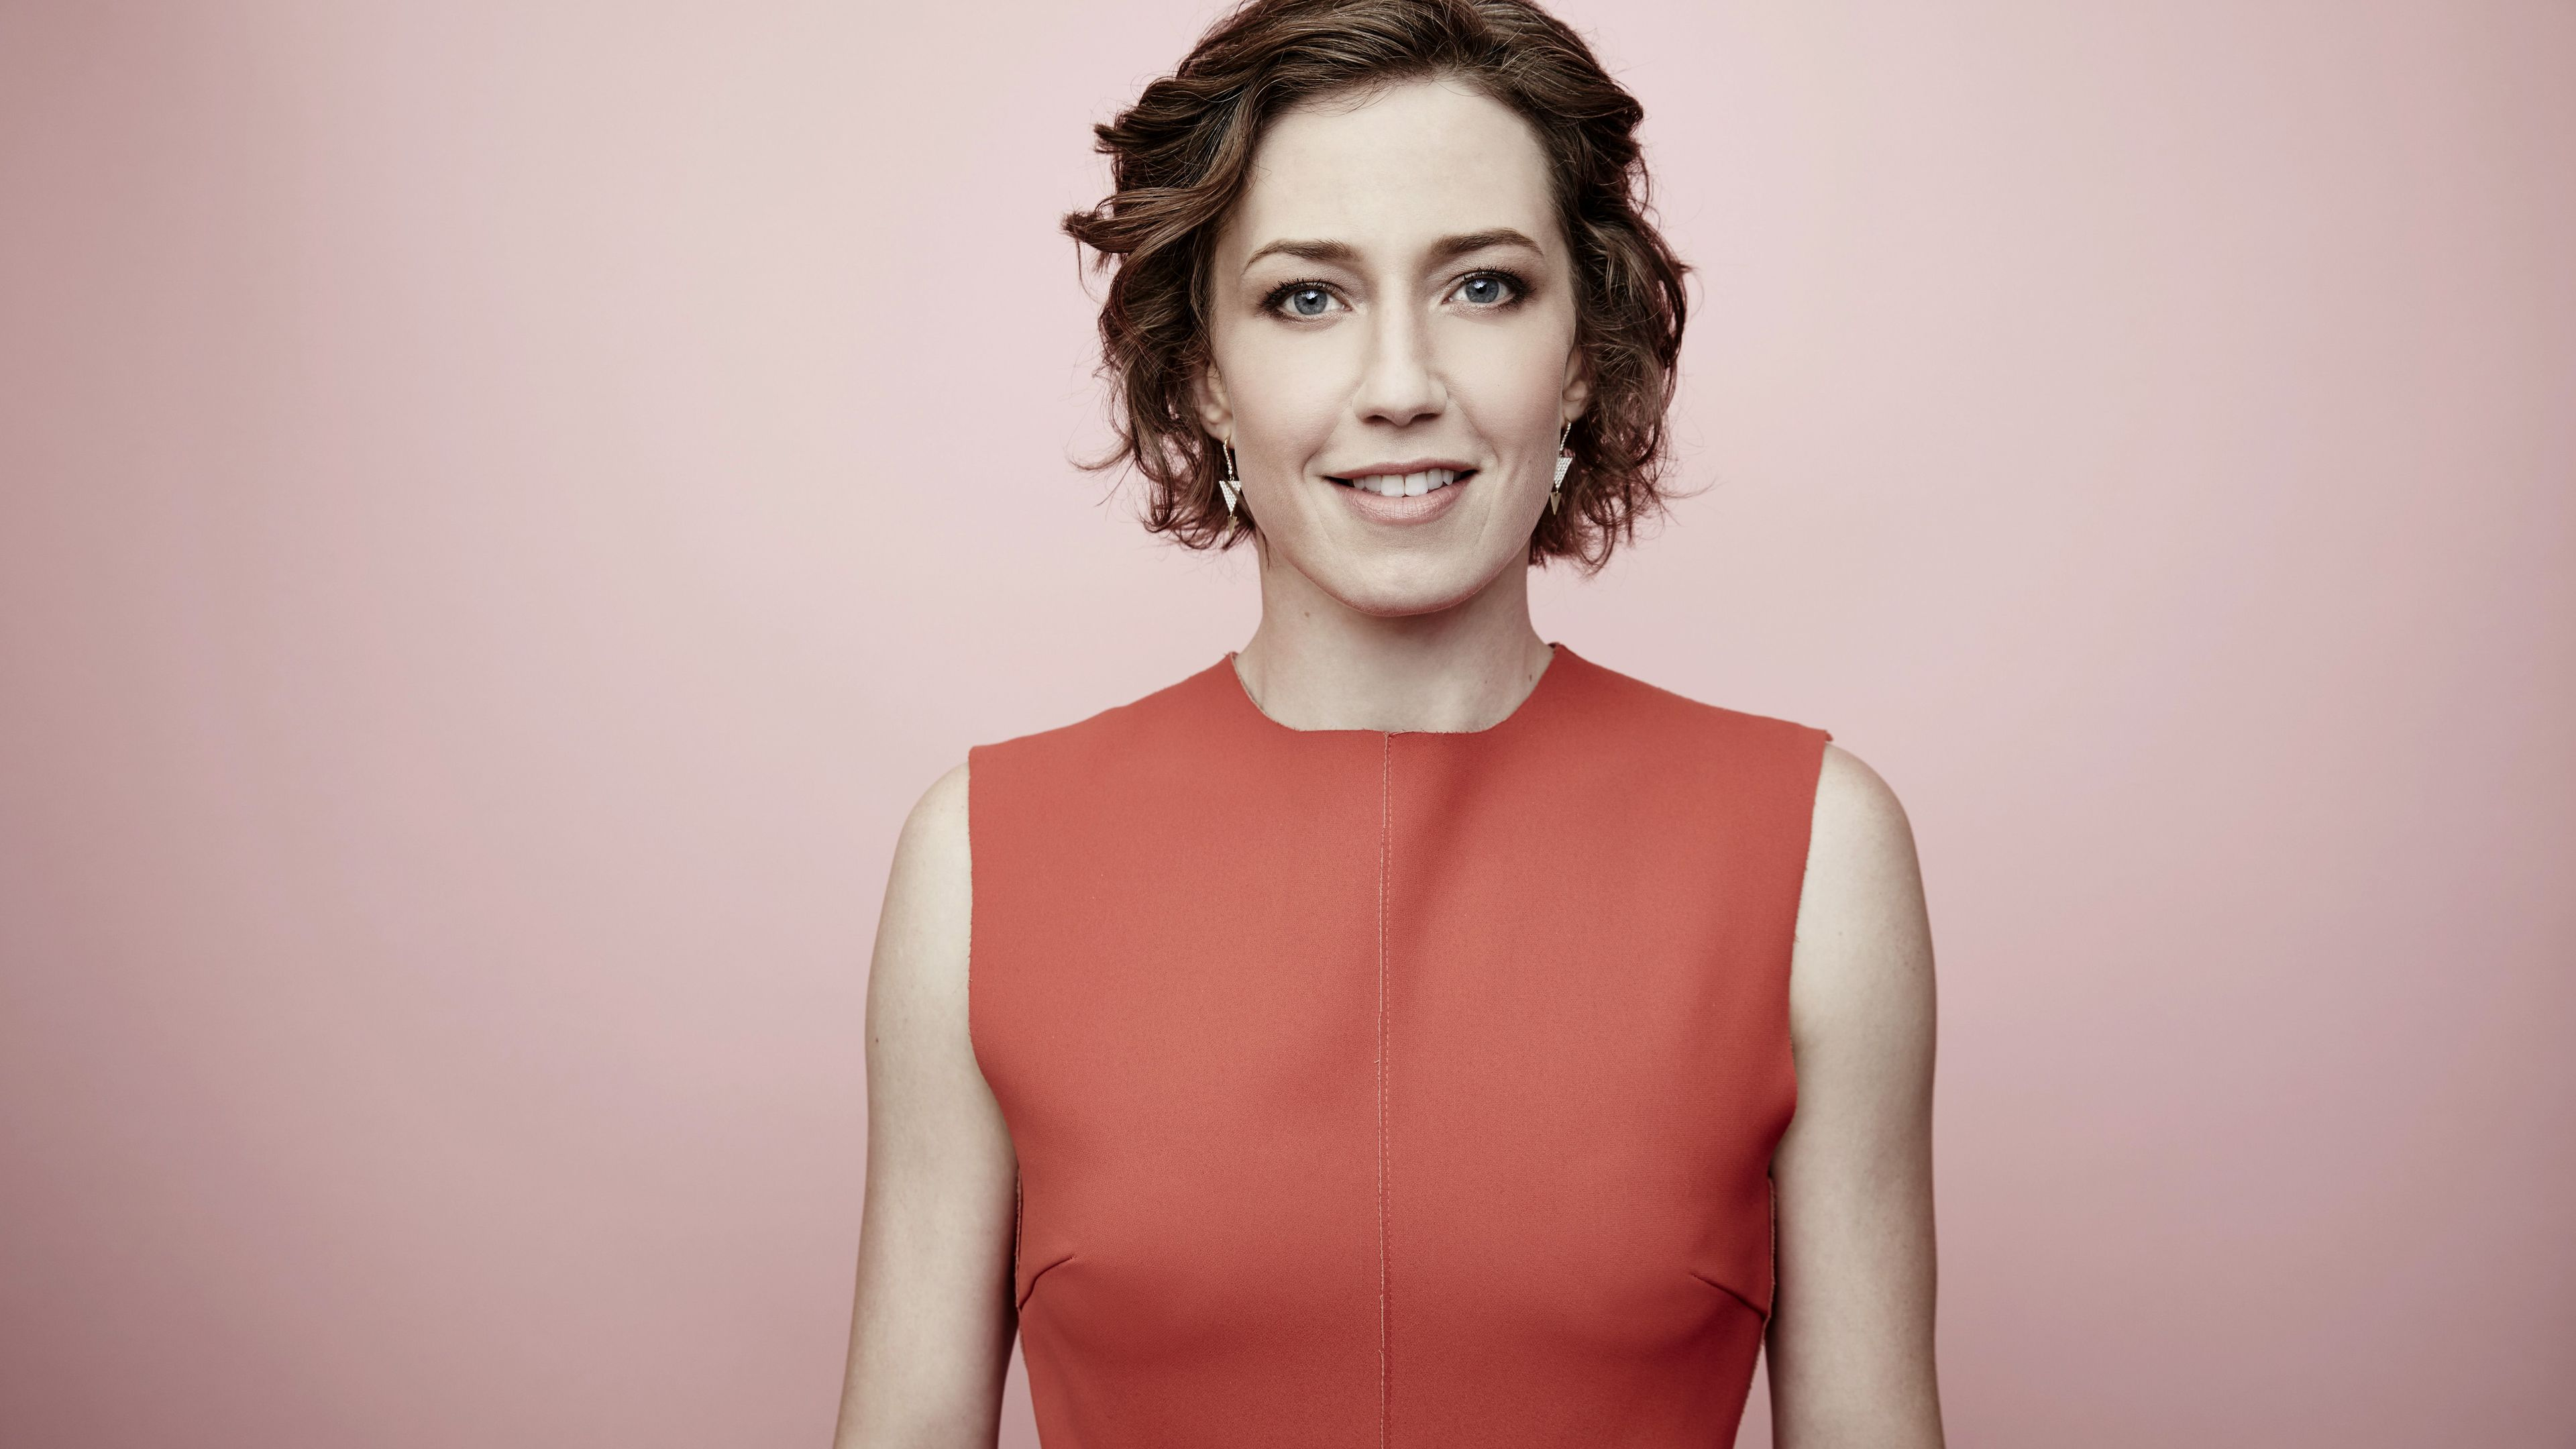 carrie coon 1536862945 - Carrie Coon - hd-wallpapers, girls wallpapers, celebrities wallpapers, carrie coon wallpapers, 8k wallpapers, 5k wallpapers, 4k-wallpapers